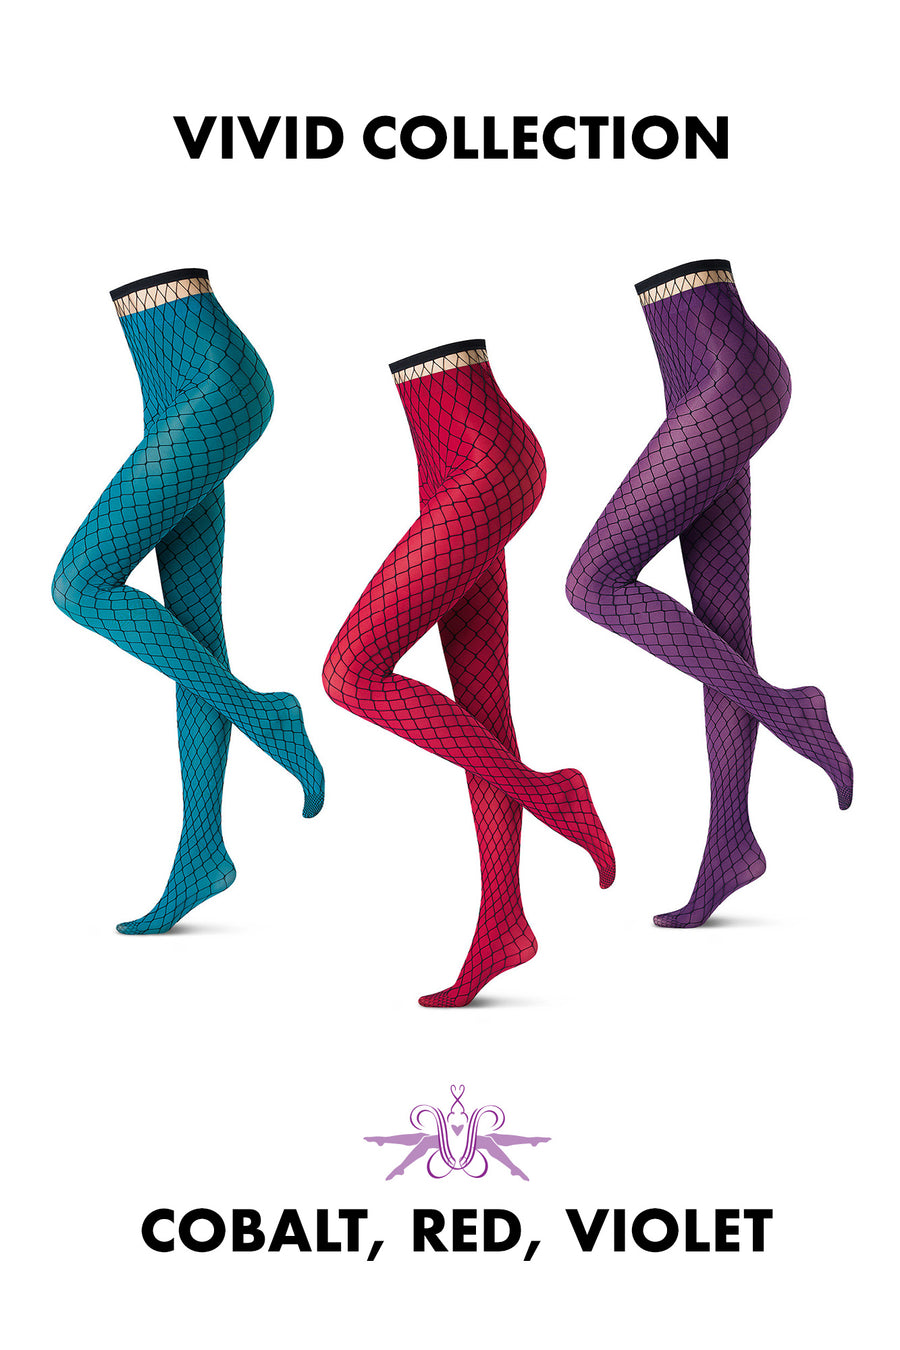 Oroblu Fishnet Glamour and All Colours 50 Tights - Mayfair Stockings